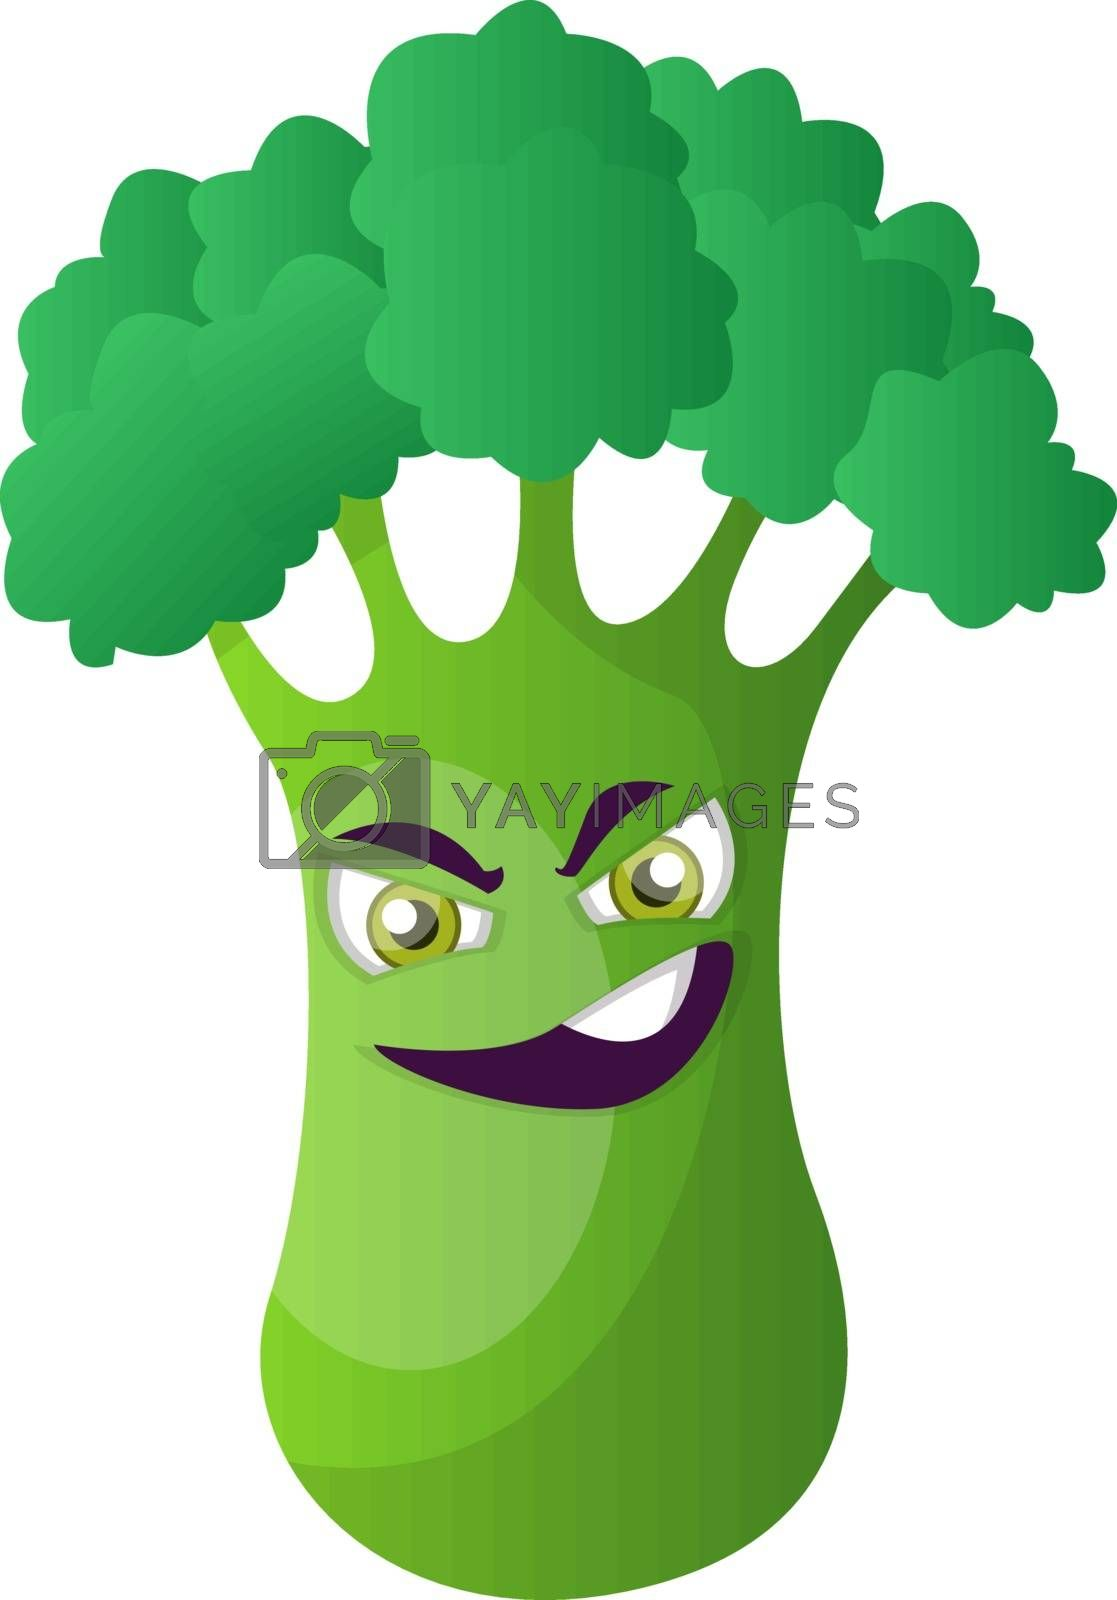 Royalty free image of Evil broccoli illustration vector on white background by Morphart